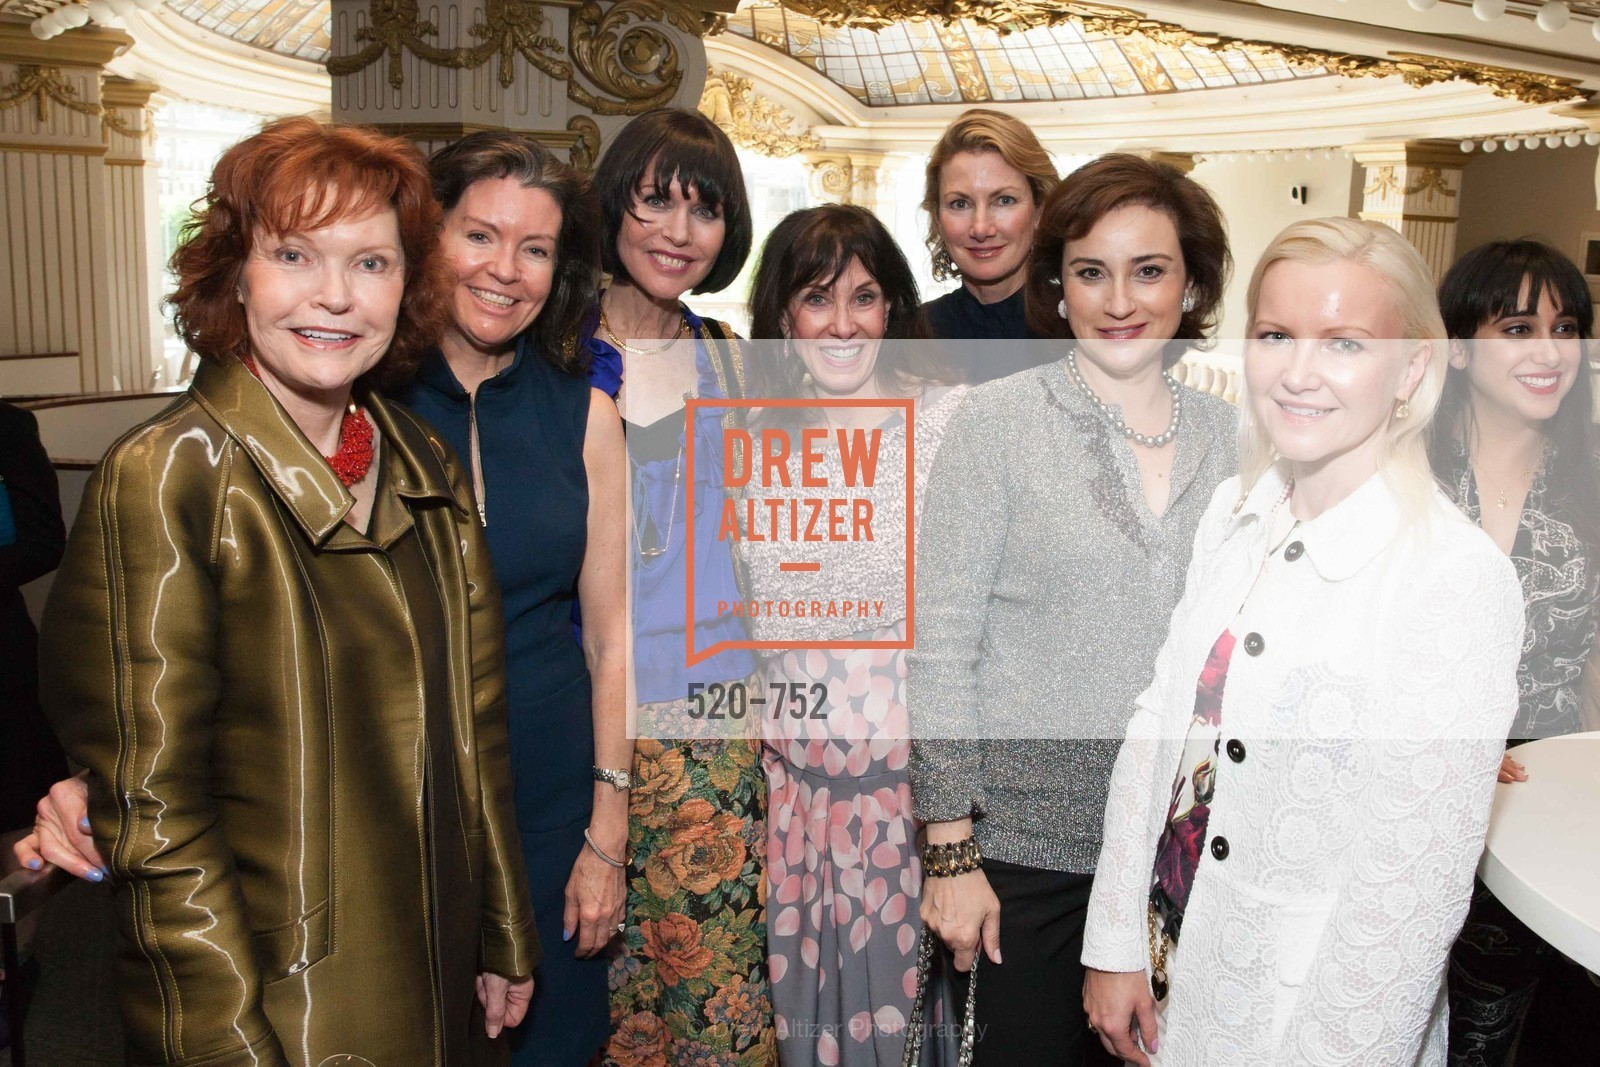 Marilyn Hayes, Elizabeth Birka-White, Christine Suppes, Jill Barnett, Shirley Parks, Dolly Chammas, Nathalie Delrue-McGuire, Electric Fashion Book Signing with Christine Suppes & Ken Downing at THE ROTUNDA, NEIMAN MARCUS, Neiman Marcus, Rotunda, May 27th, 2015,Drew Altizer, Drew Altizer Photography, full-service agency, private events, San Francisco photographer, photographer california